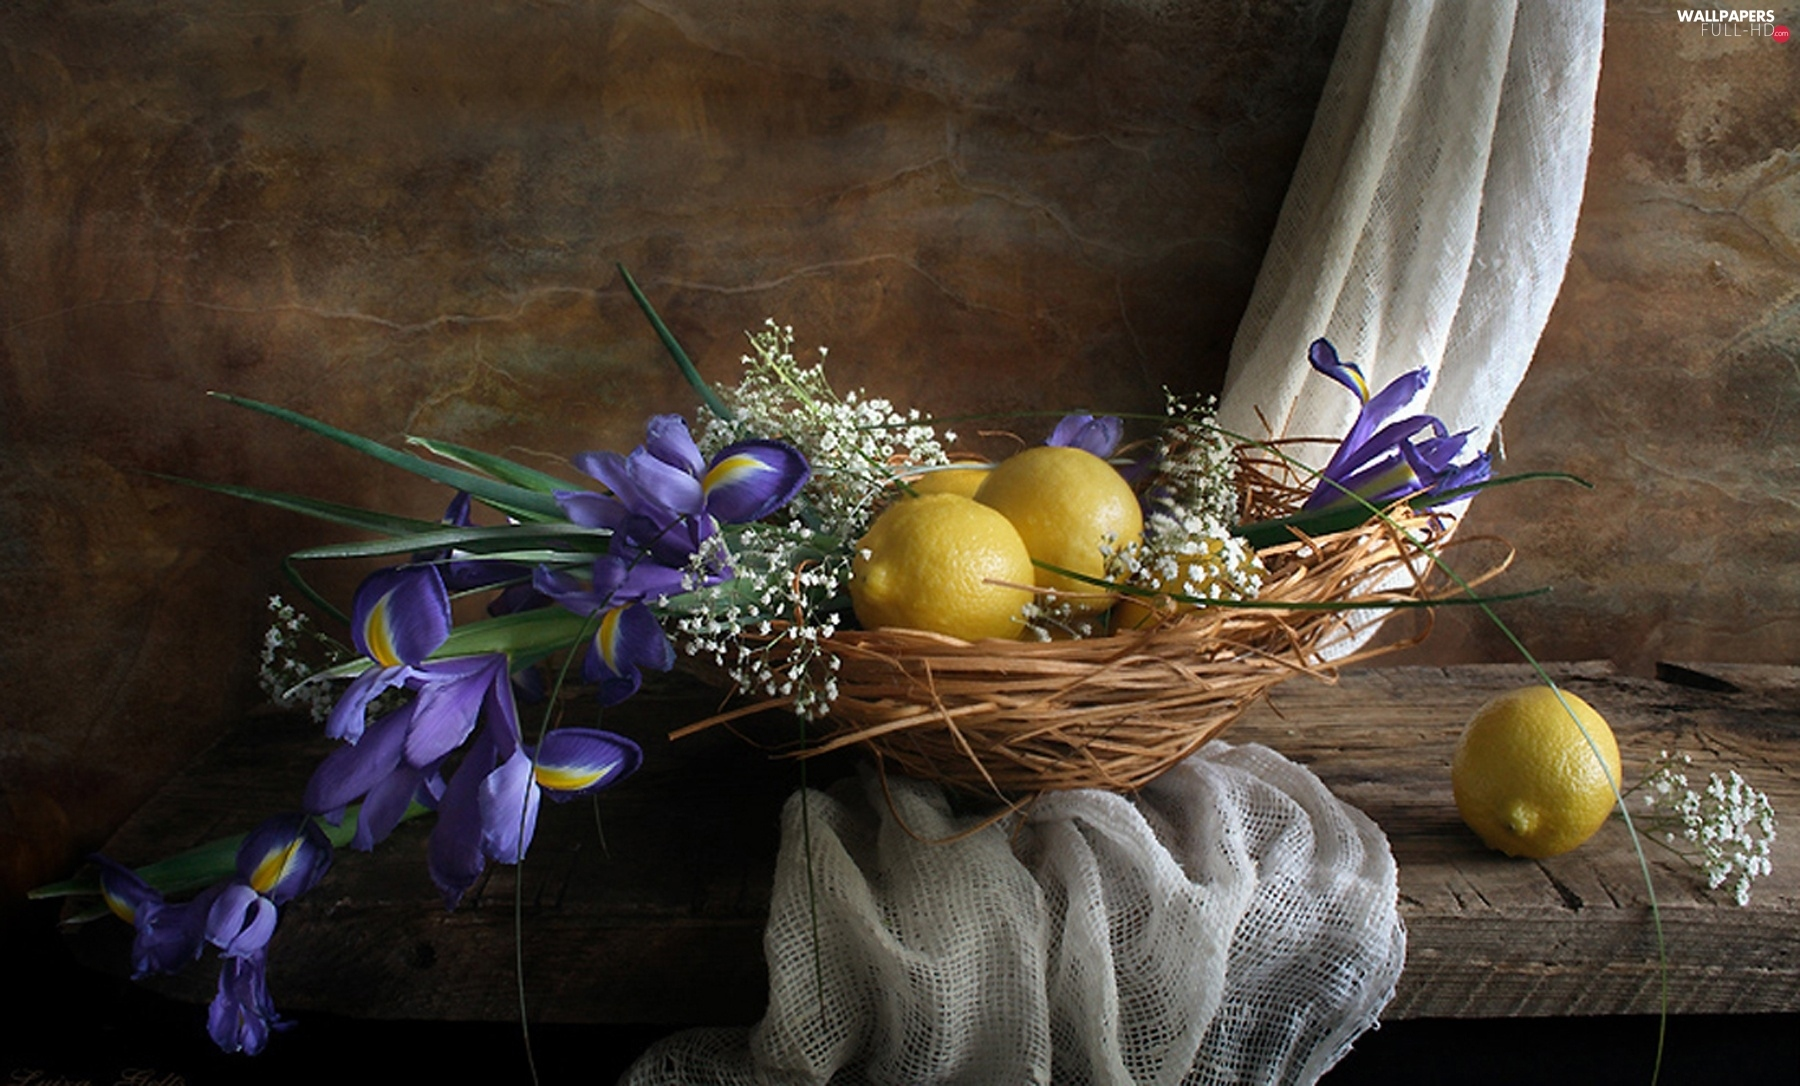 lemons, Irises, composition, Flowers